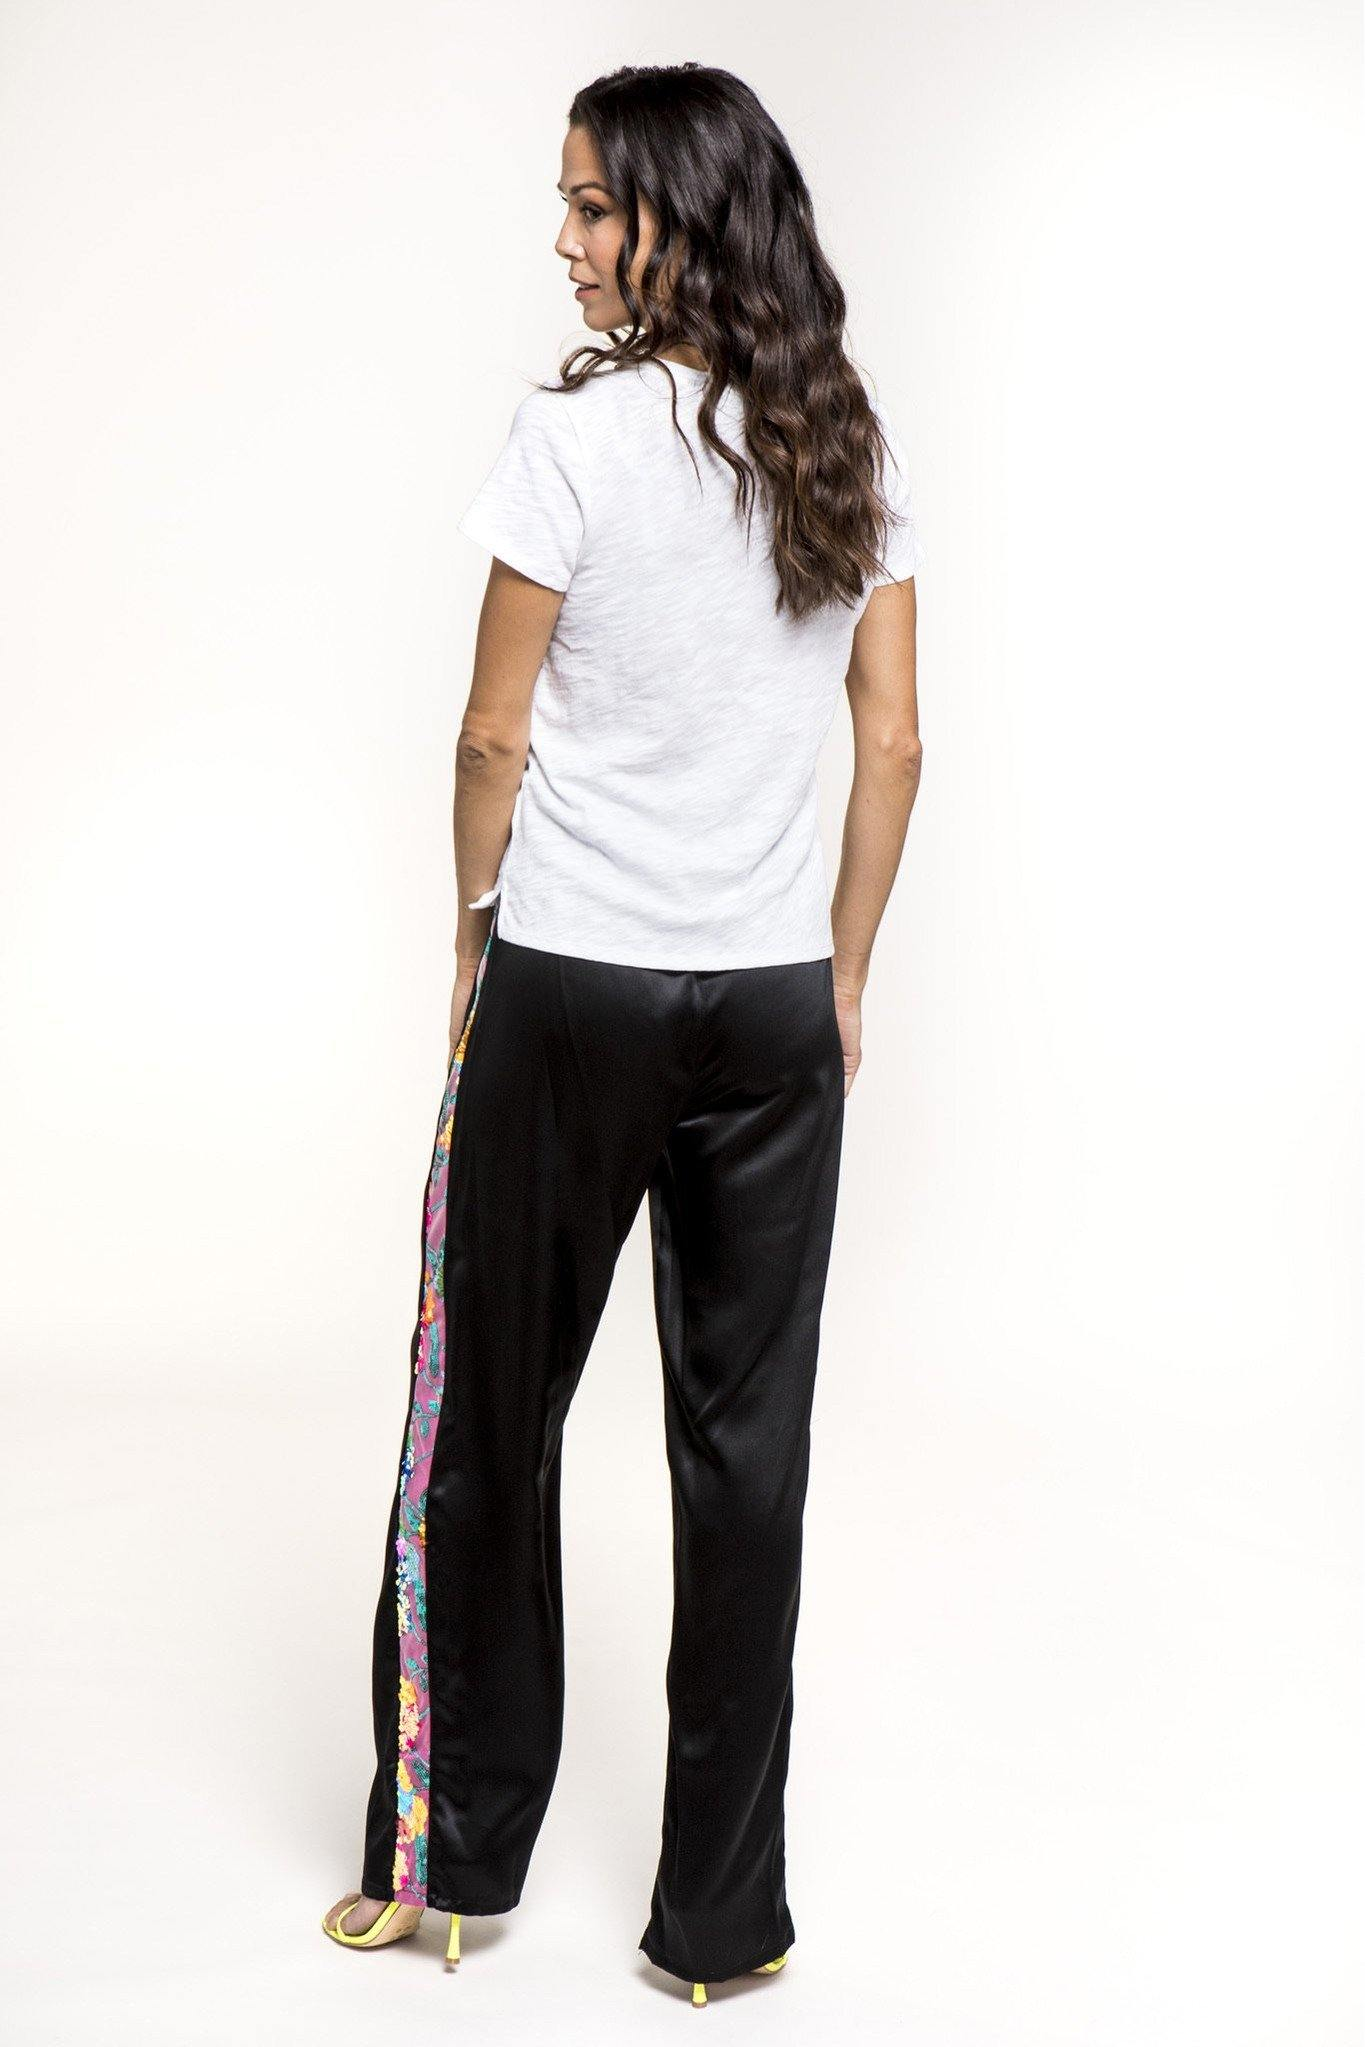 The Issa Trouser